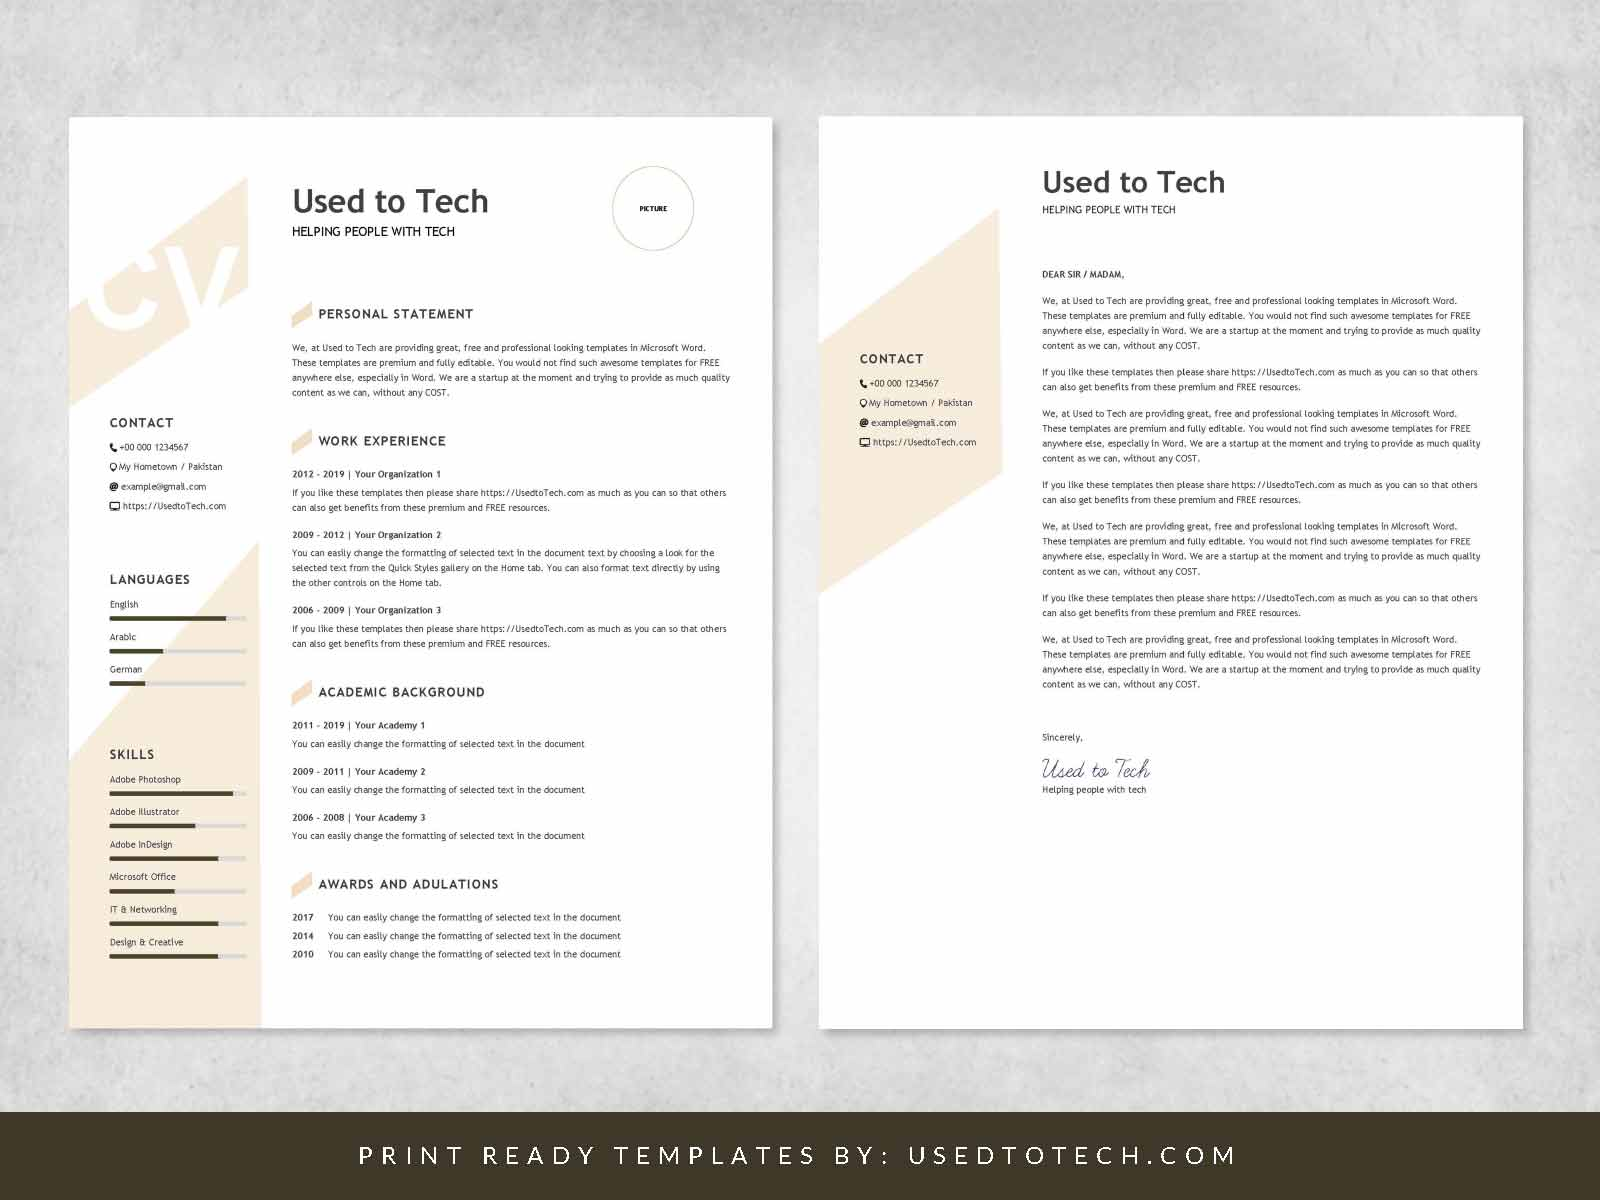 modern resume template in word free used to tech templates for engineering objective Resume Free Modern Resume Templates For Word